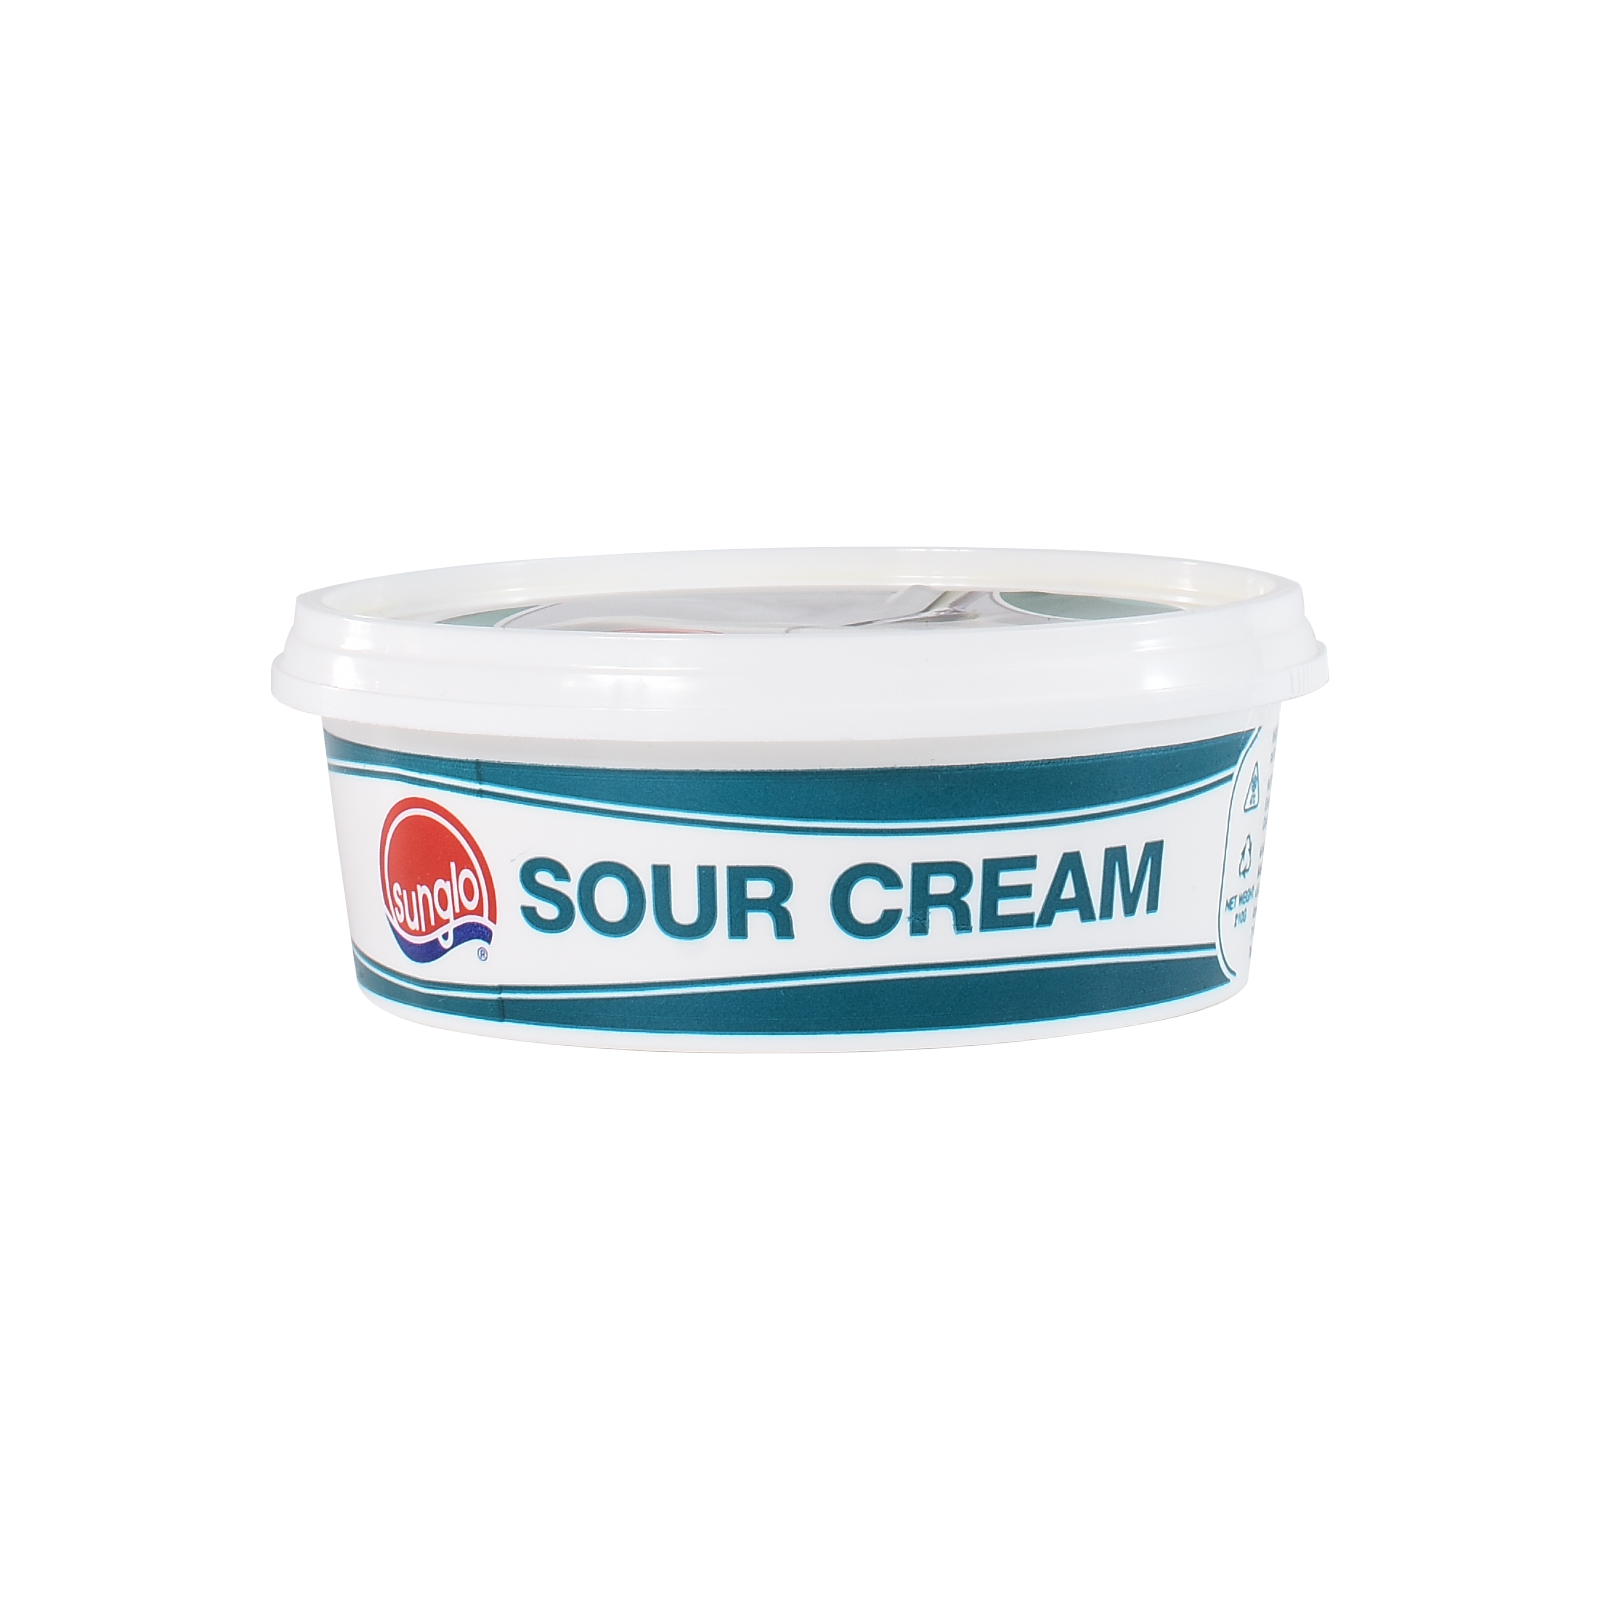 sunglo sour cream.png